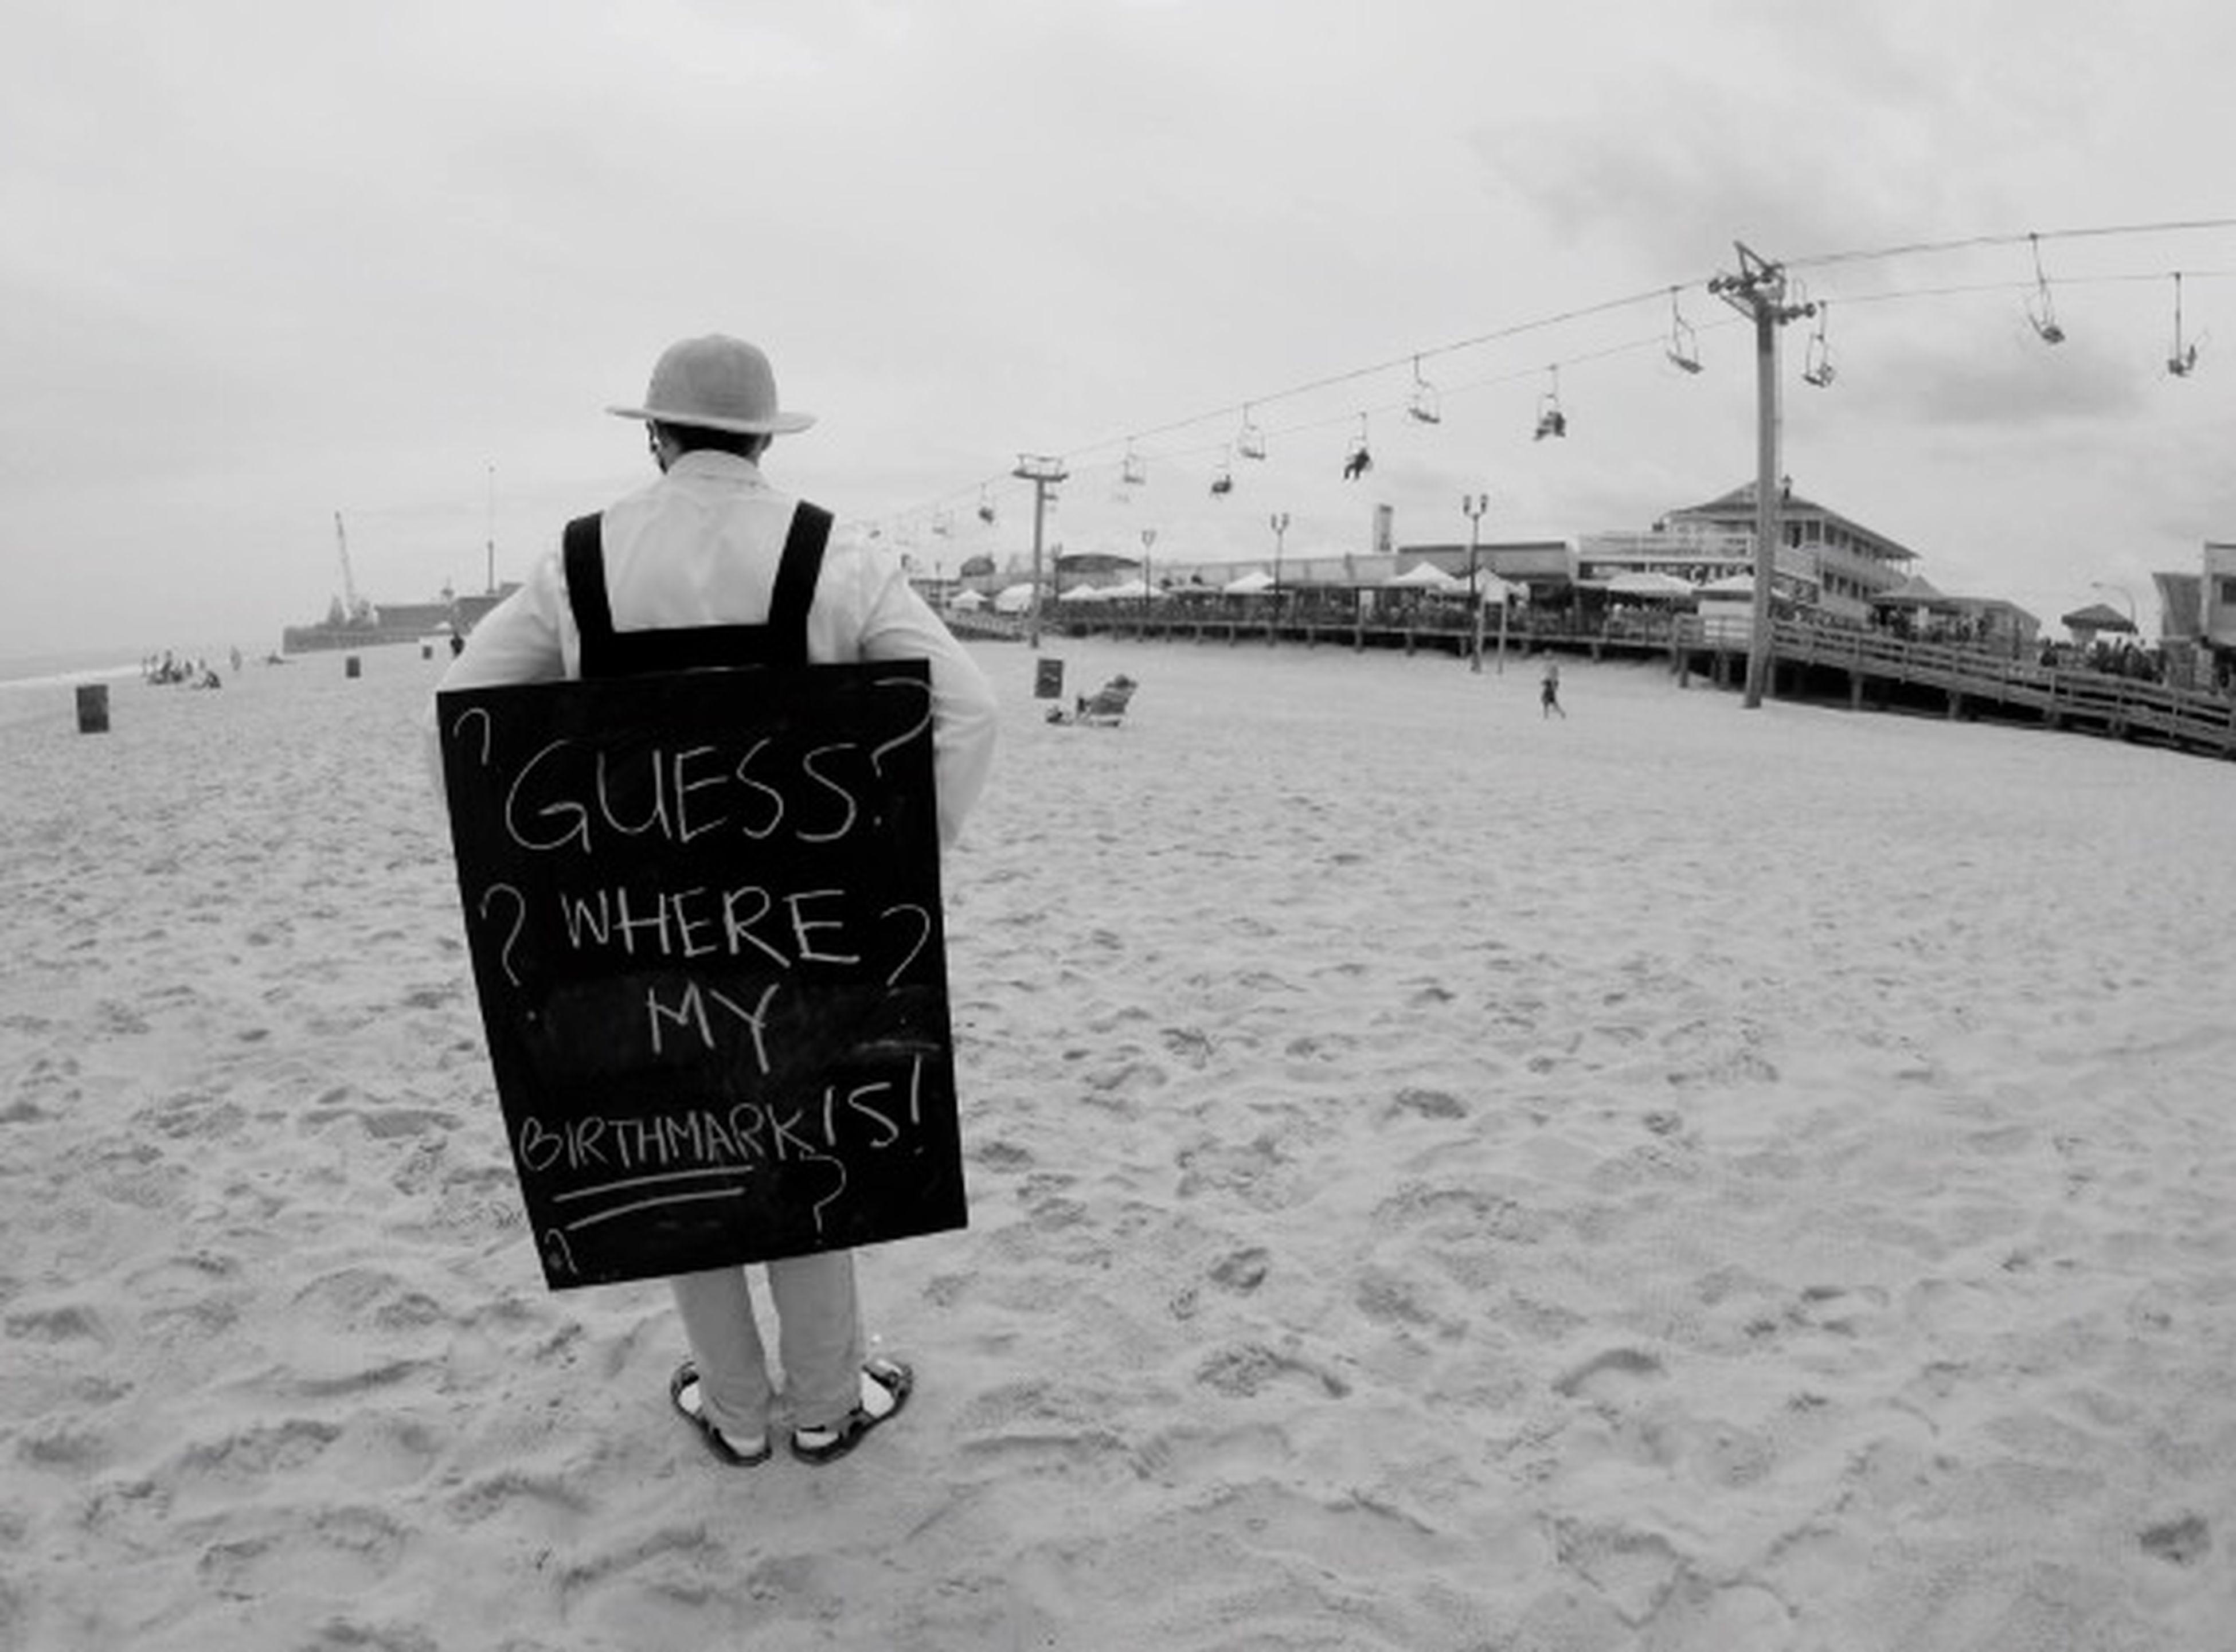 sky, text, beach, sand, lifestyles, incidental people, western script, built structure, sea, leisure activity, communication, men, full length, outdoors, street, architecture, walking, rear view